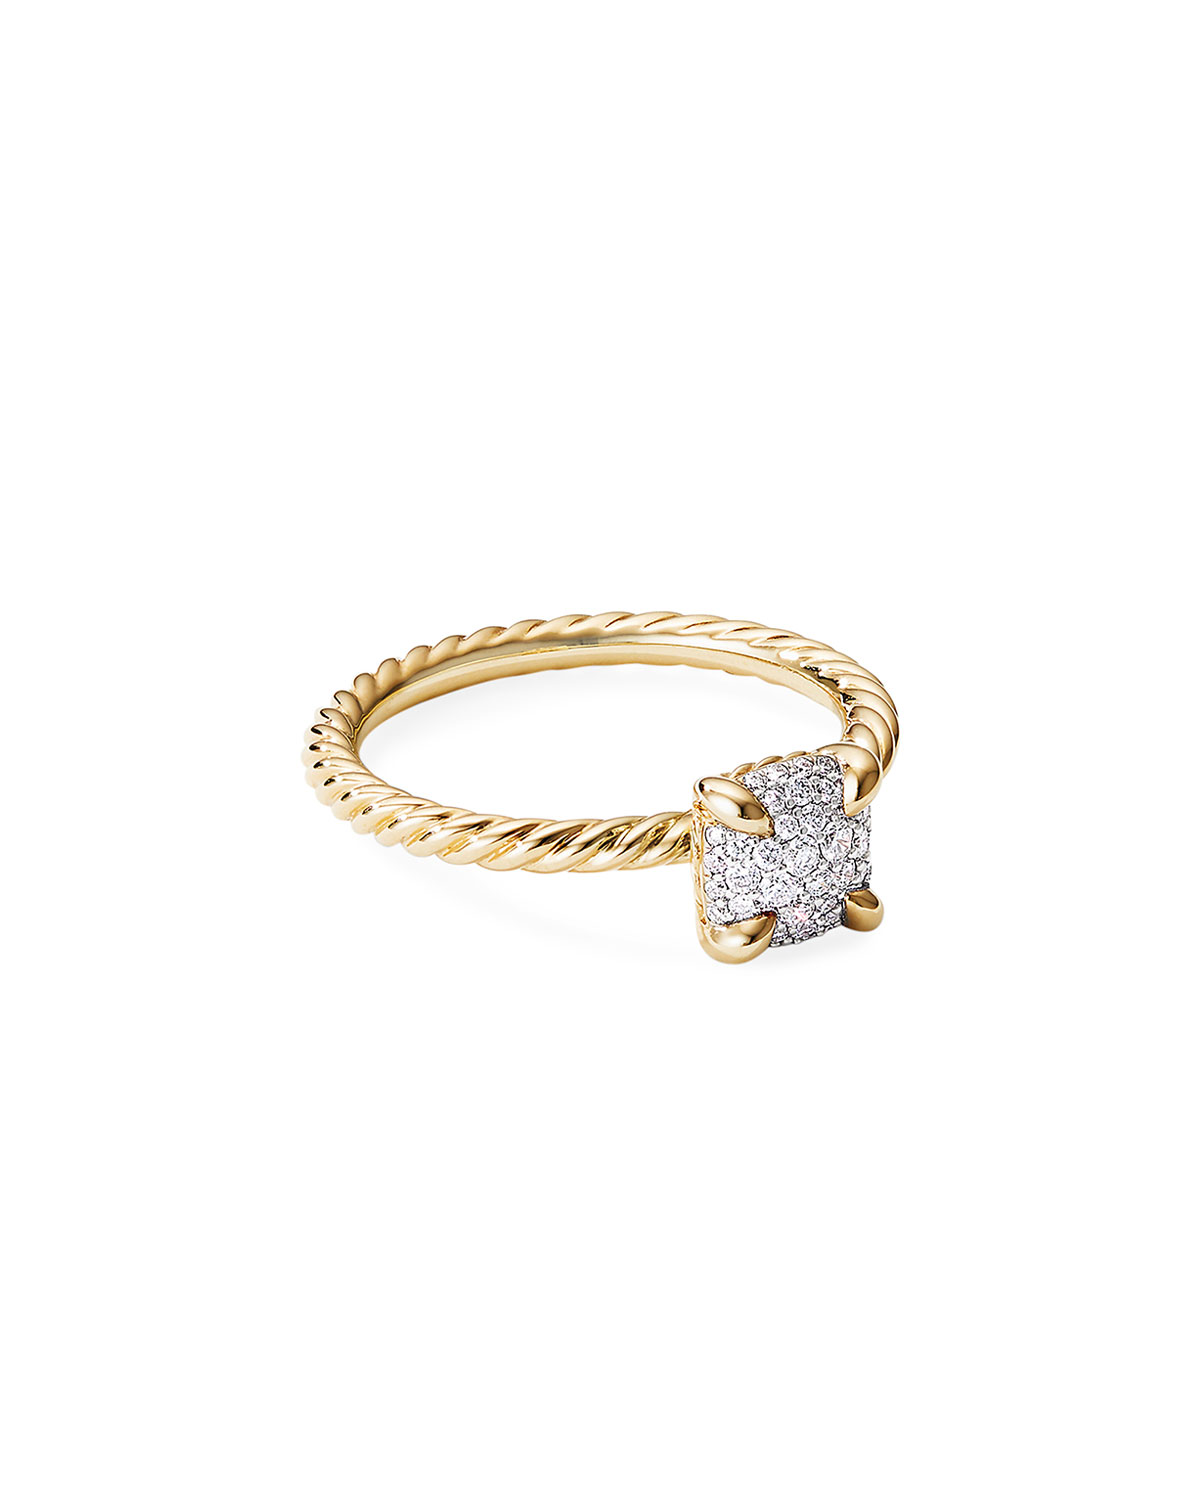 David Yurman Chatelaine Ring in 18K Yellow Gold with Full Pave Diamonds, Size 6